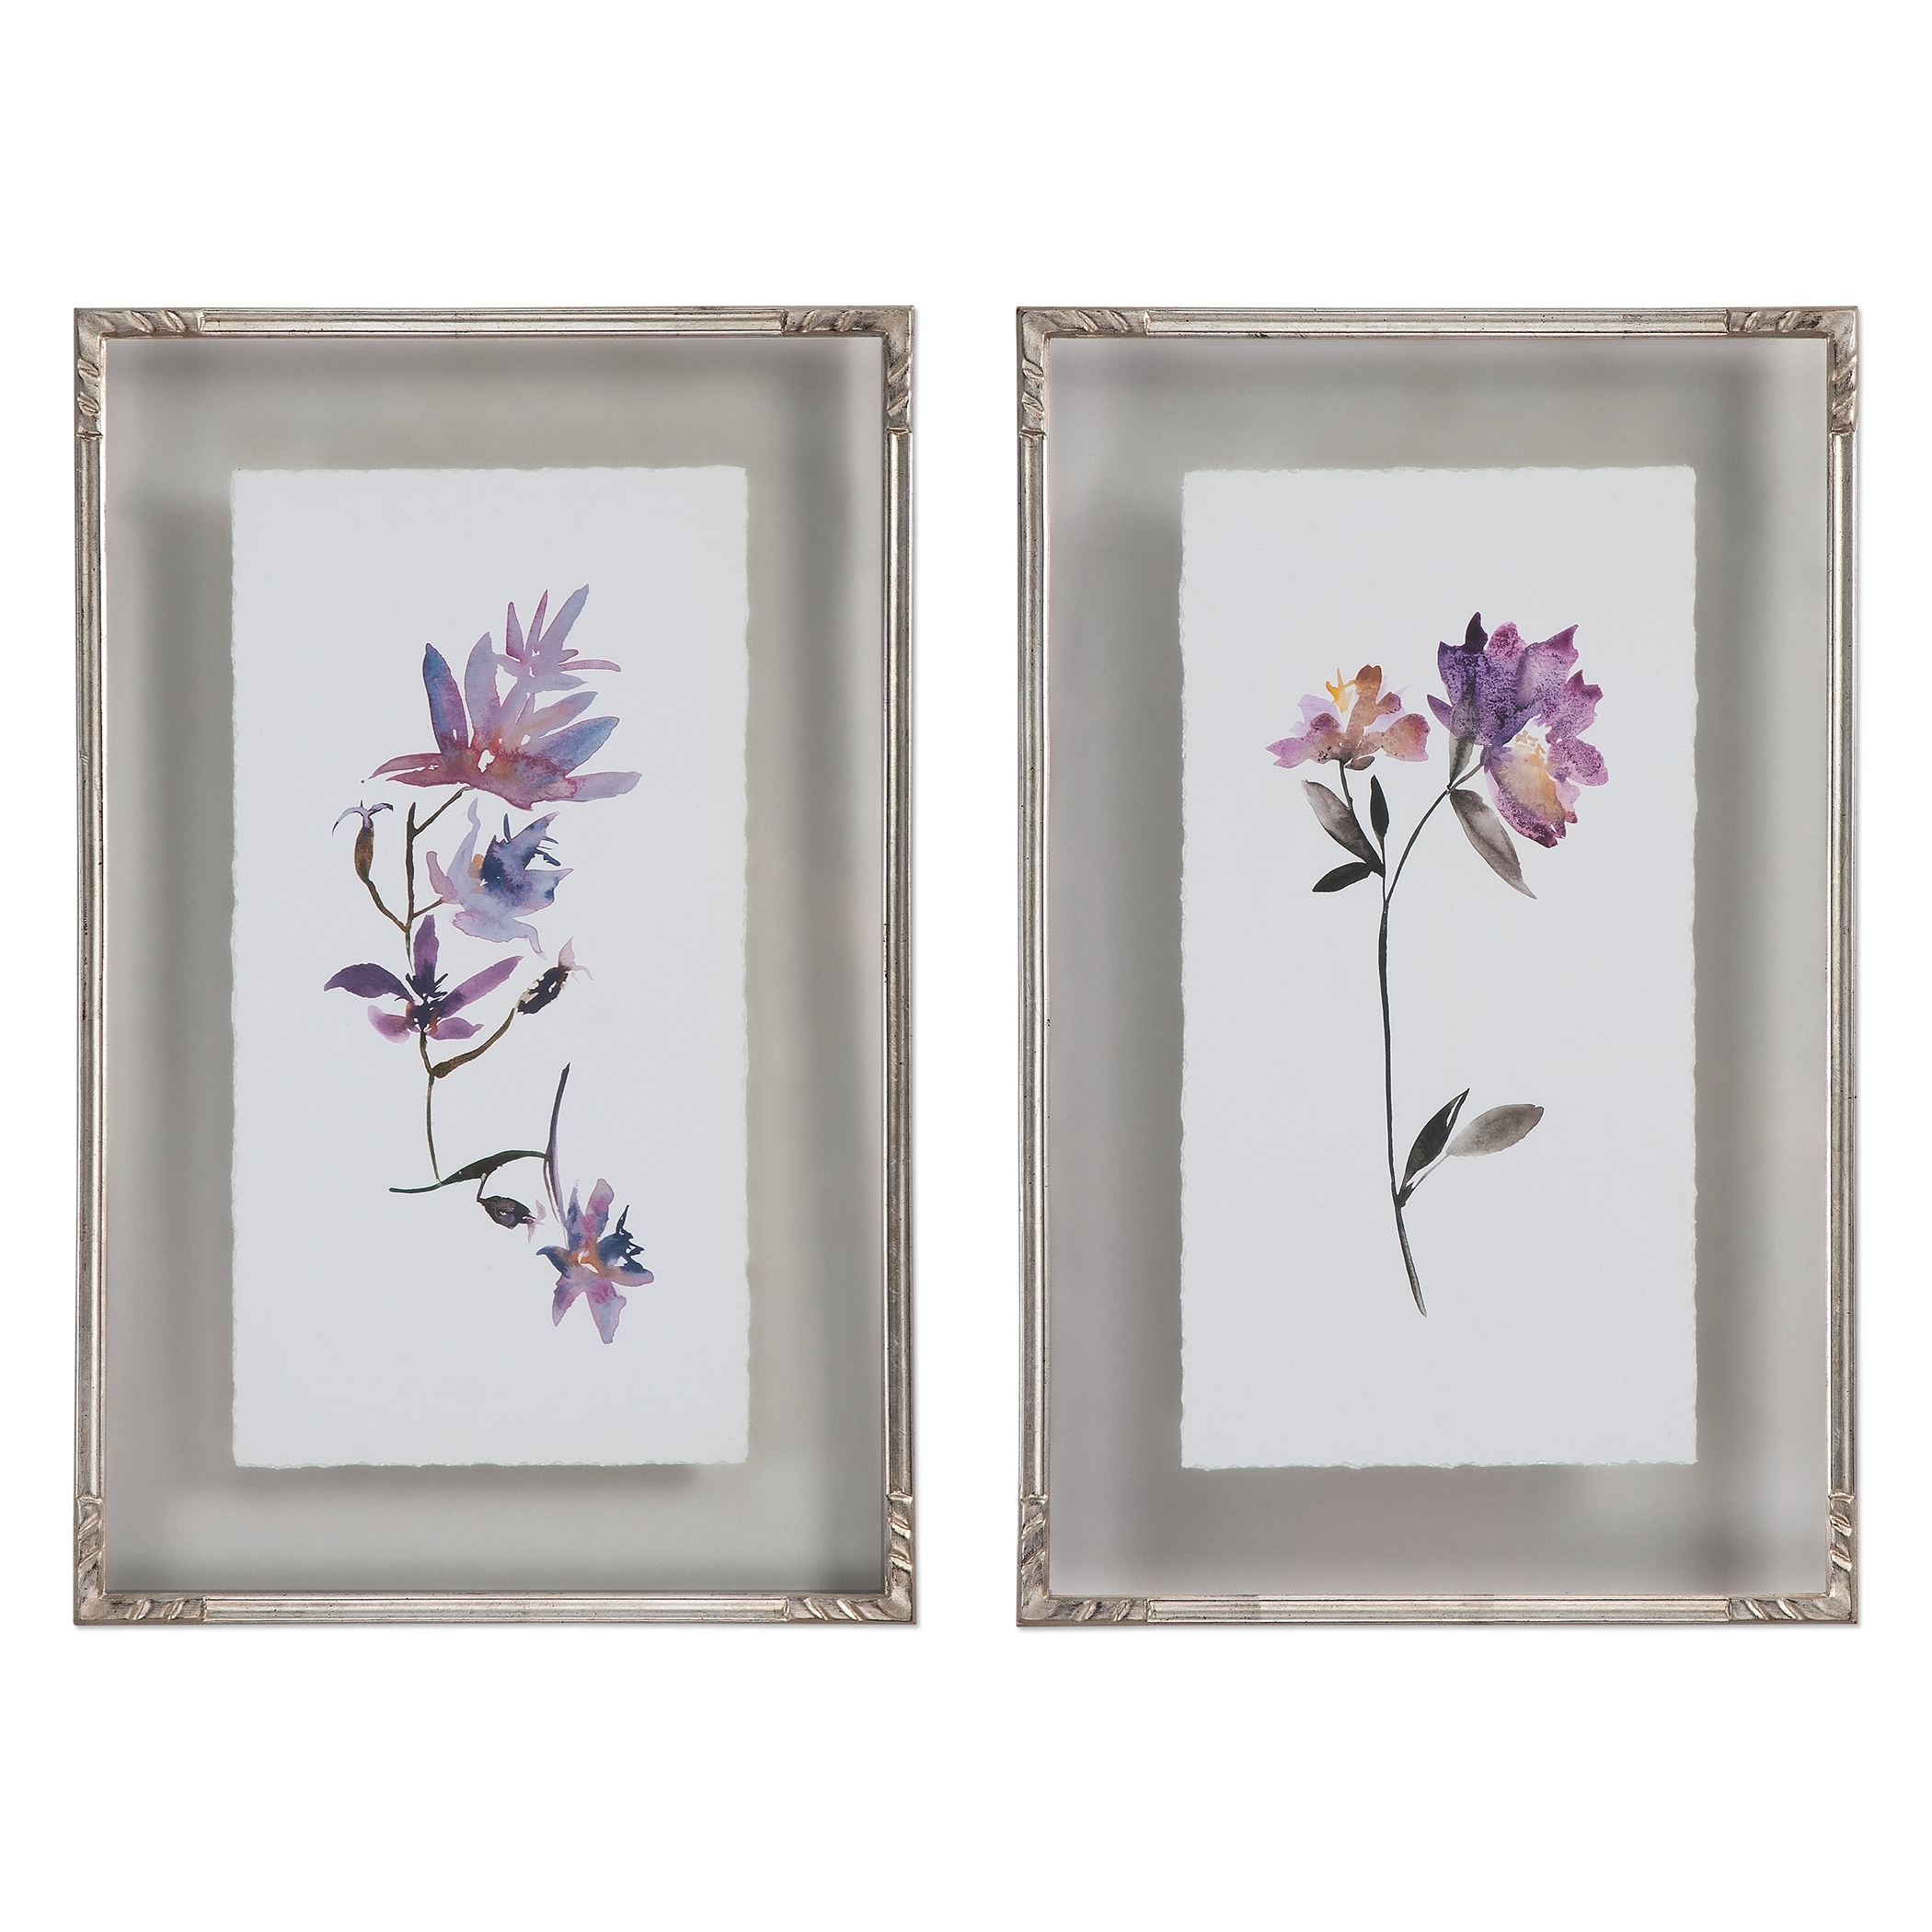 Uttermost Art Floral Watercolors Art, S/2 - Item Number: 41552